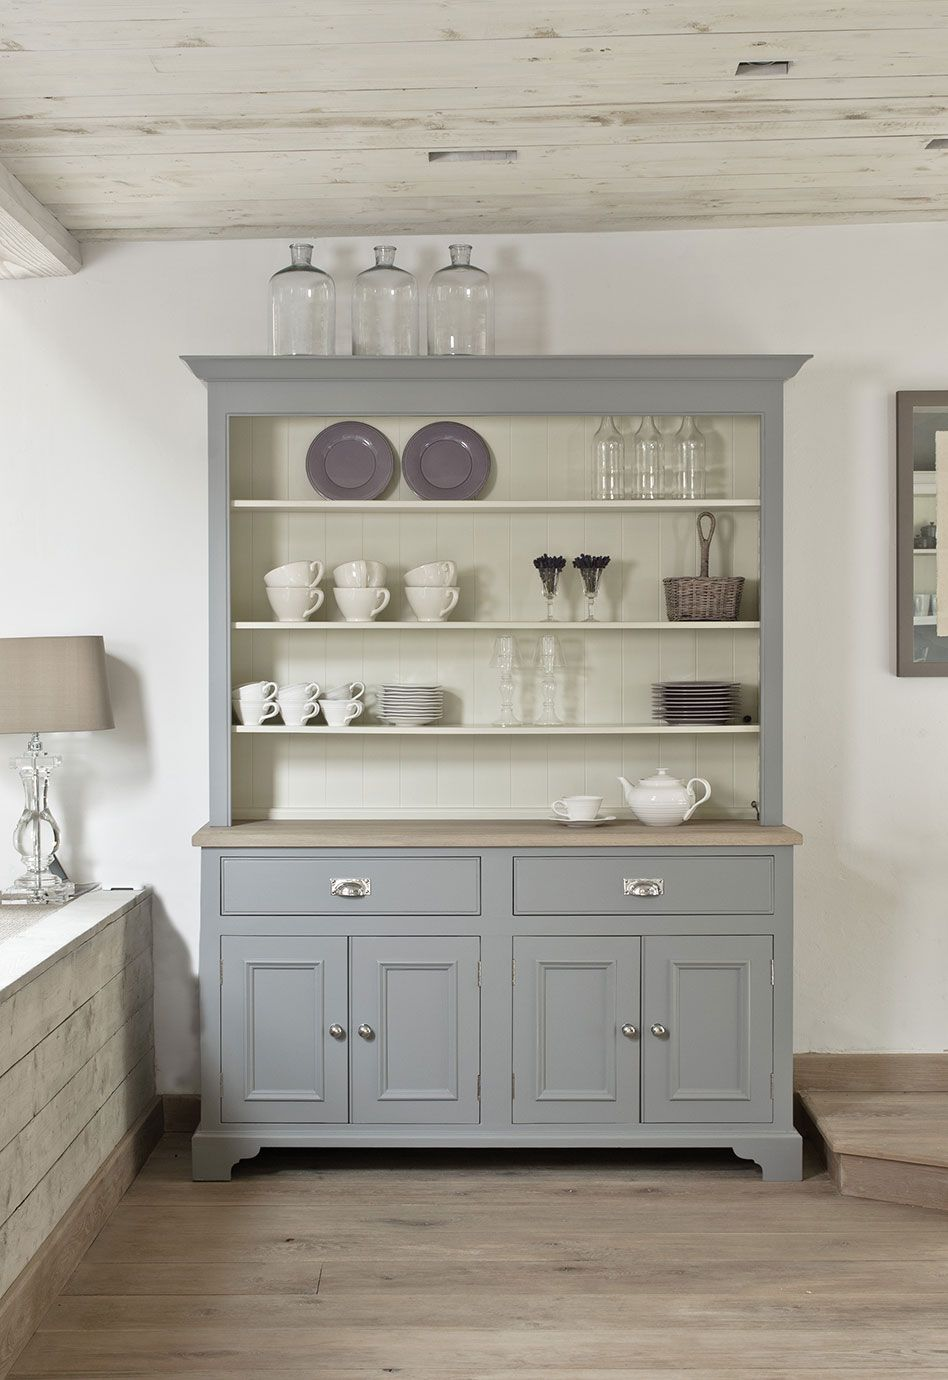 Kitchen dresses ideas for the house pinterest kitchens house